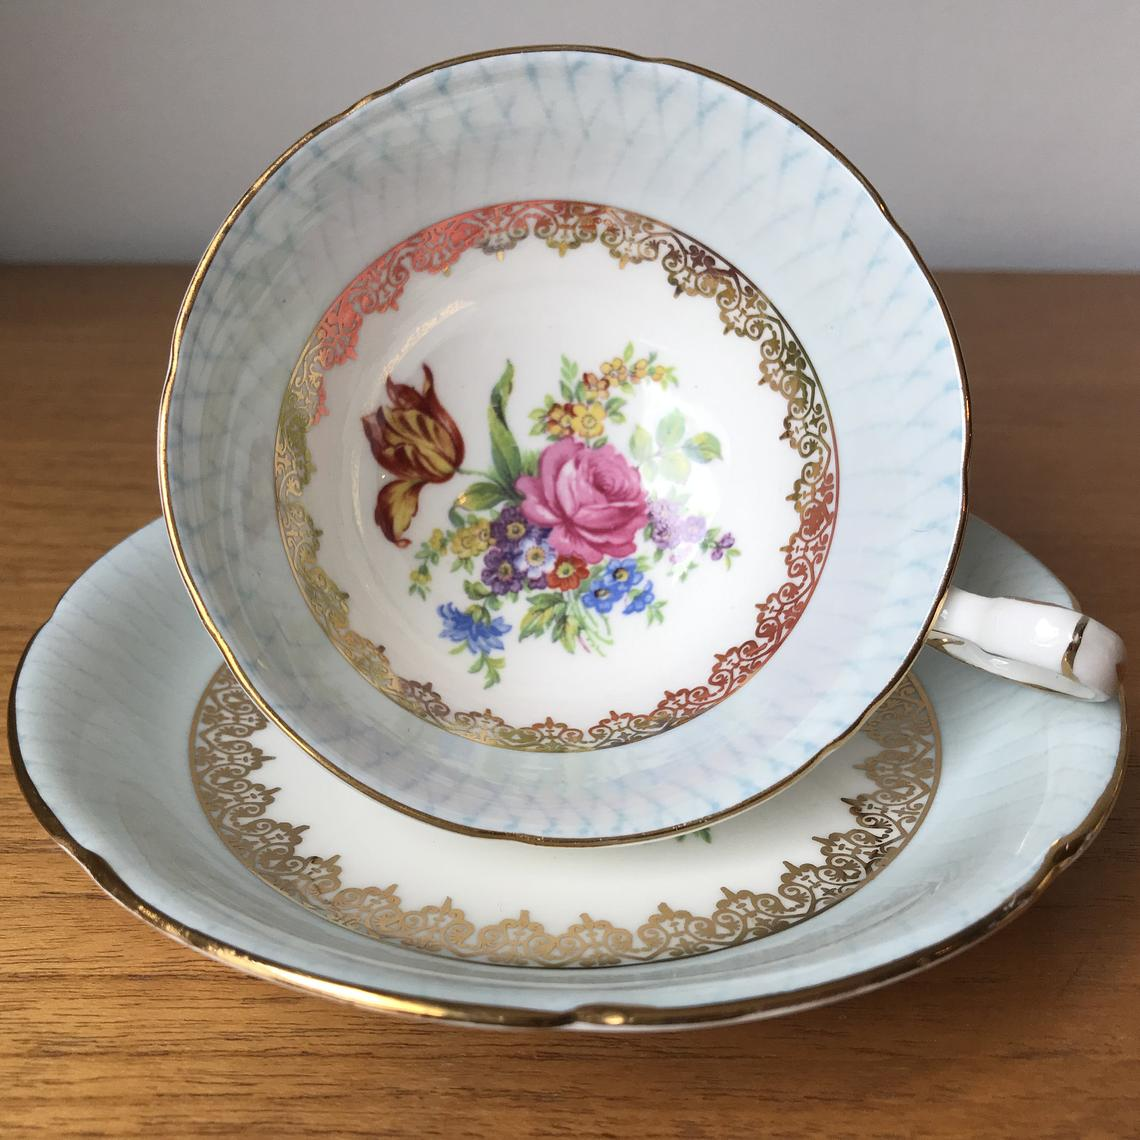 Royal Grafton Tea Cup and Saucer, Floral Pale Blue Border Teacup and Saucer, Vintage China